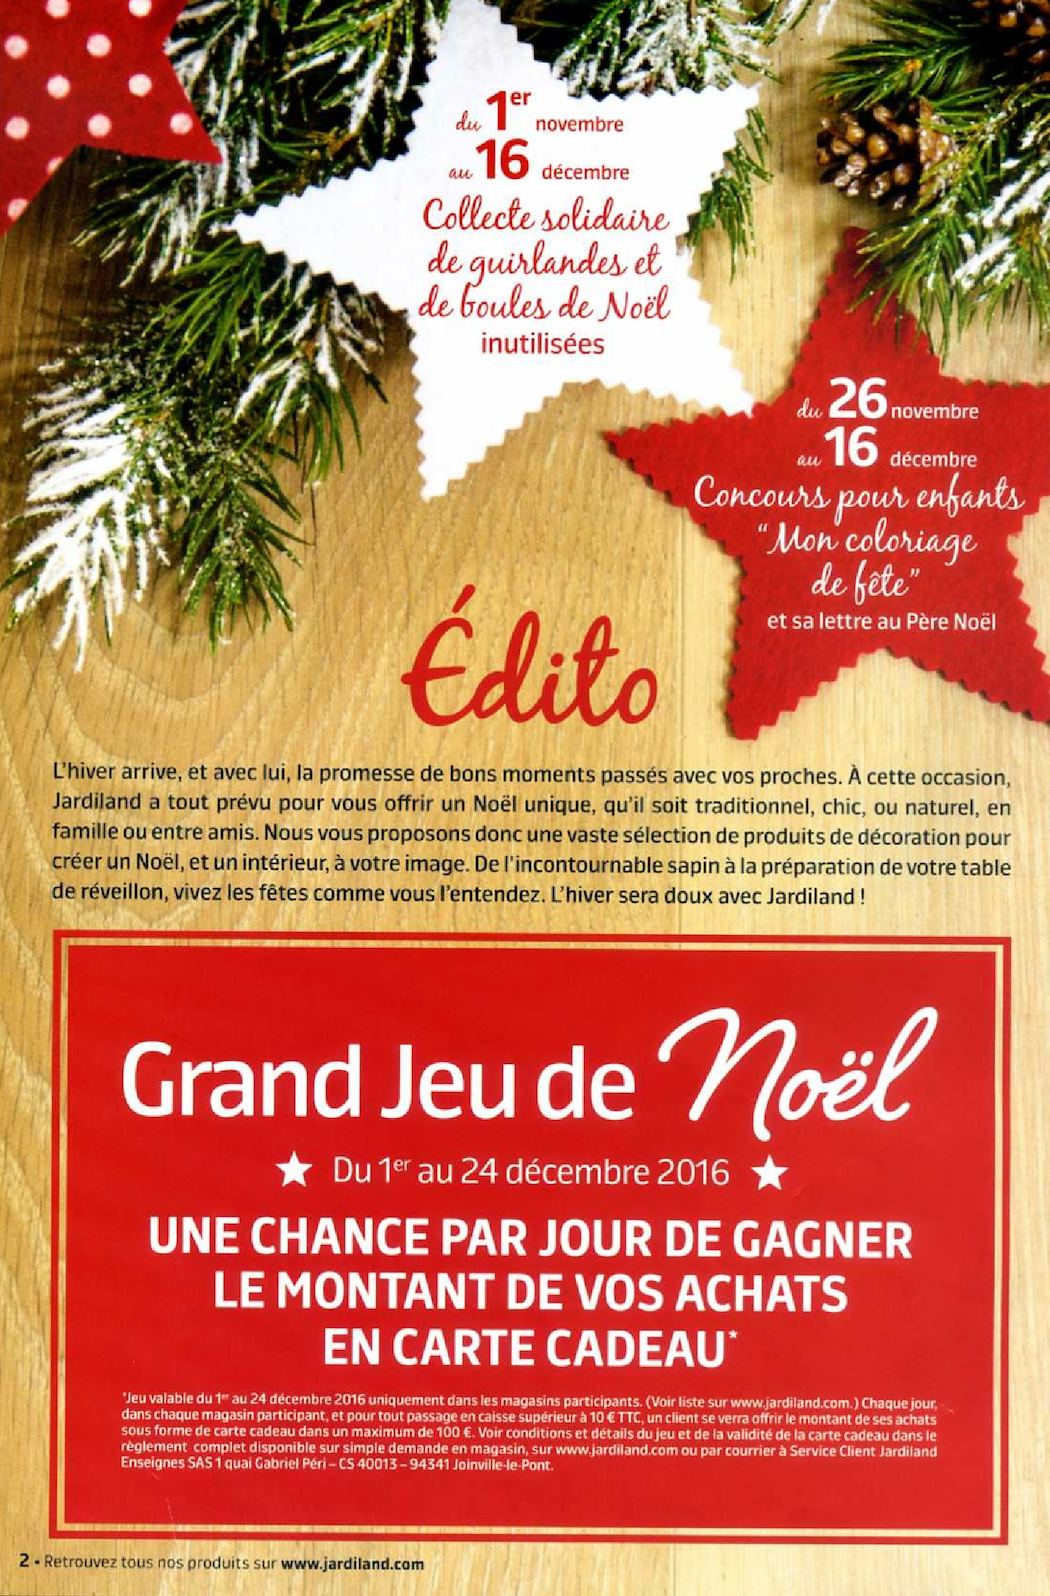 Decoration De Noel Jardiland Jardiland Noël 2016 Calameo Downloader